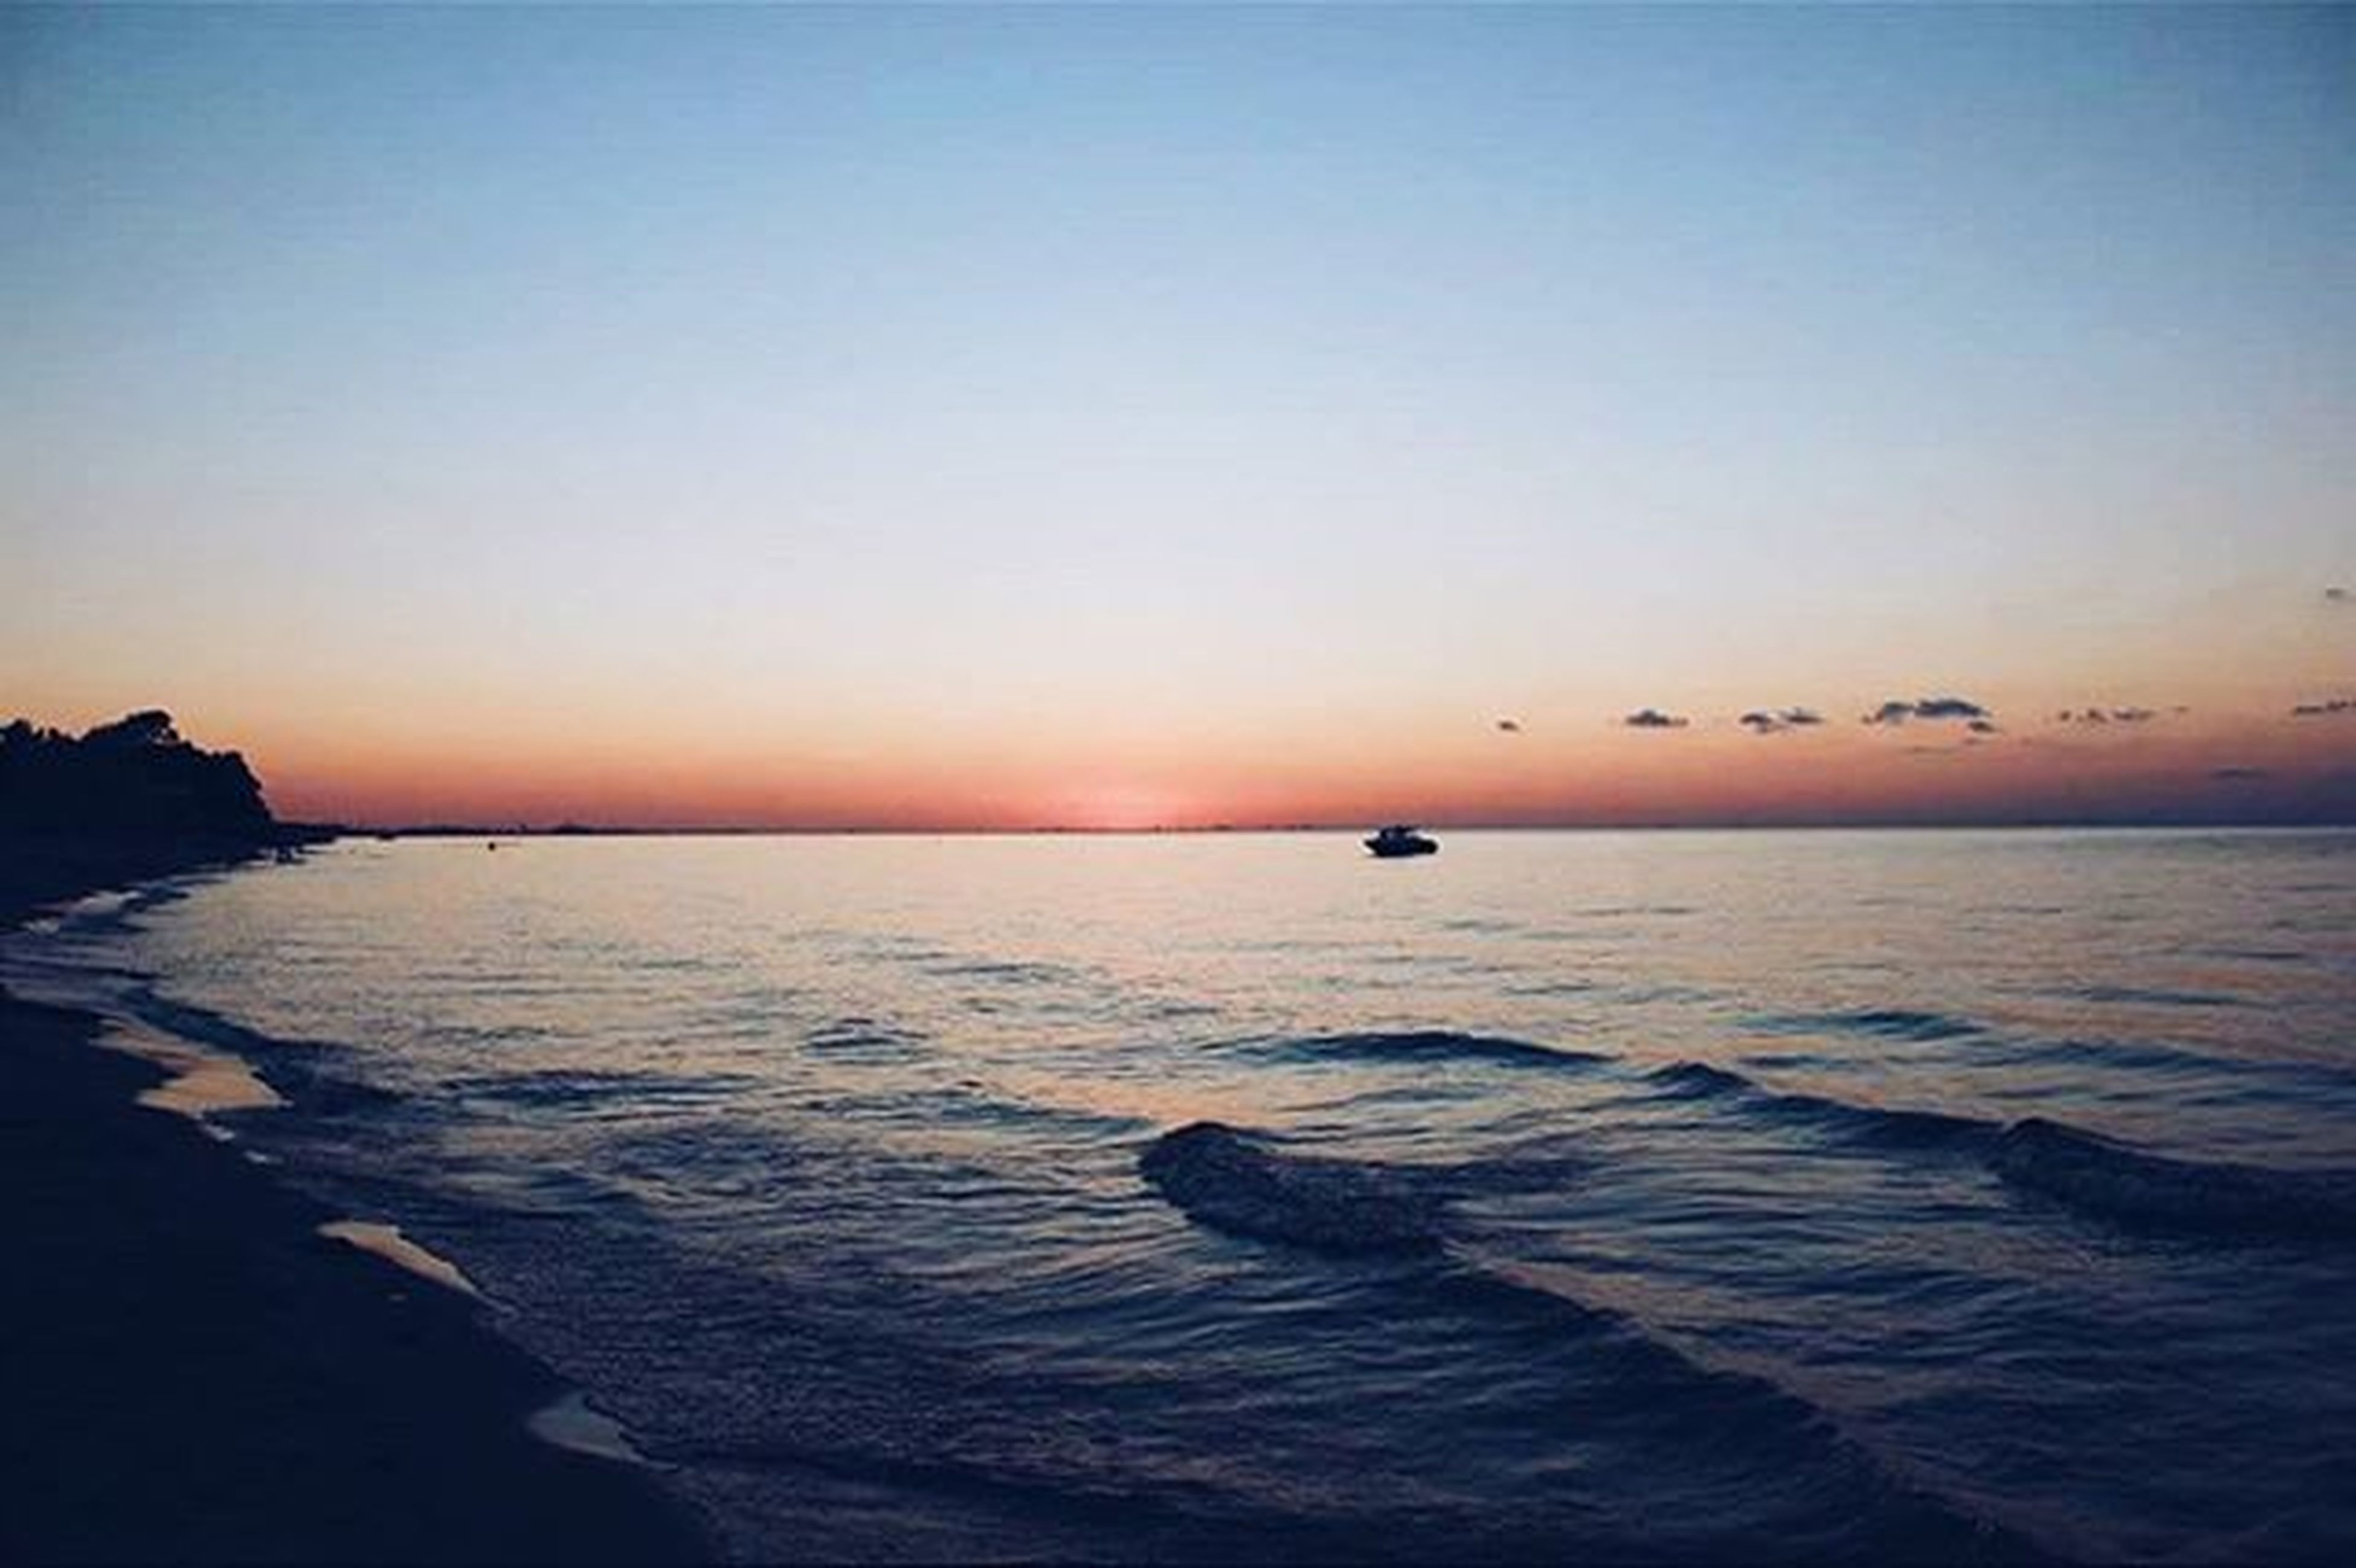 sea, water, horizon over water, sunset, tranquil scene, scenics, clear sky, copy space, tranquility, beauty in nature, nature, idyllic, orange color, rippled, seascape, waterfront, silhouette, sky, dusk, beach